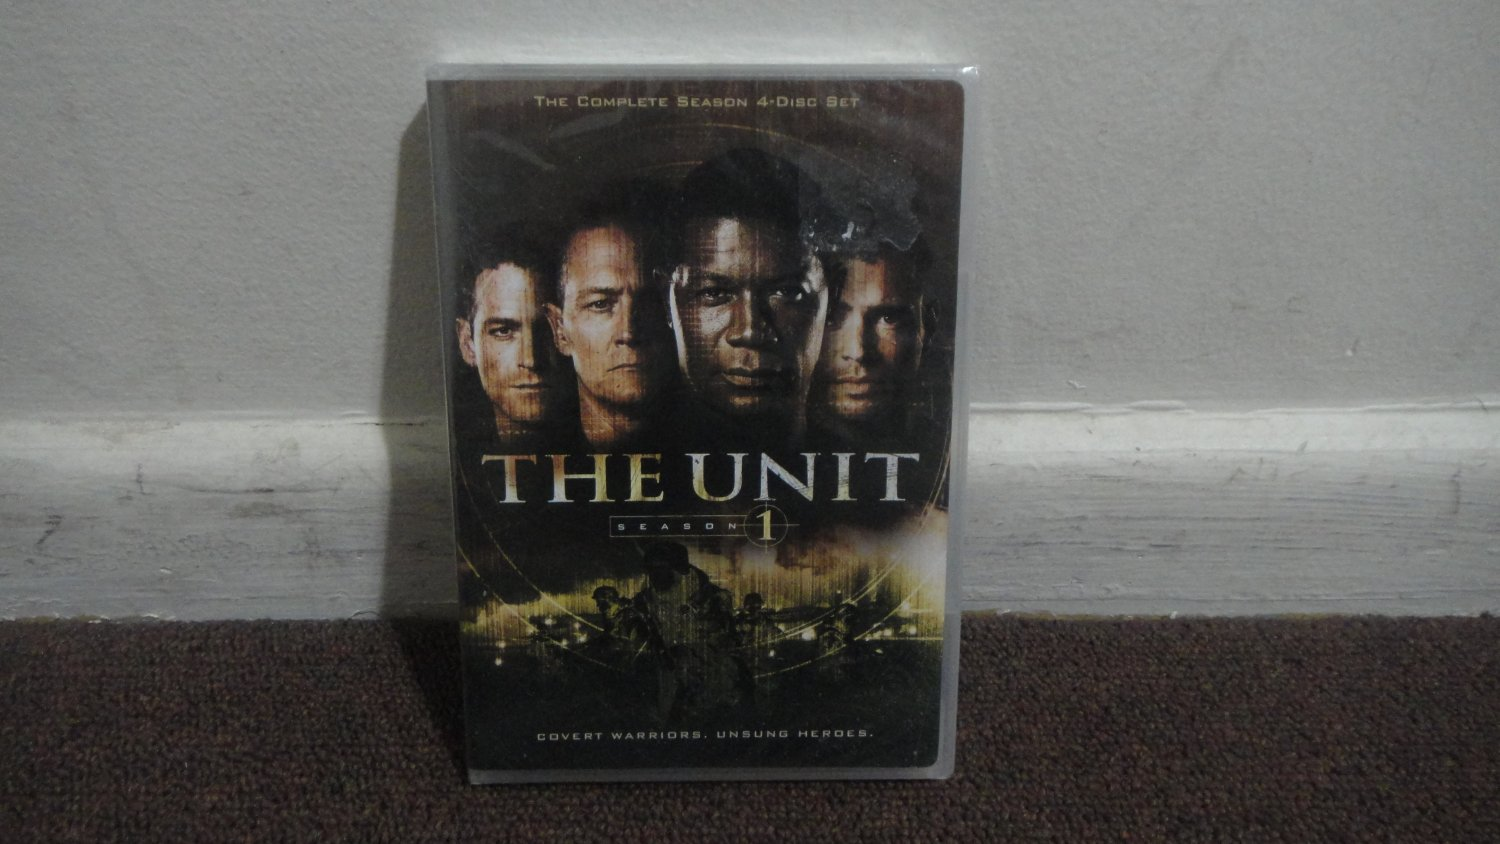 THE UNIT - DVD: The First Season, Season 1, Brand New, Sealed. LOOK!!!